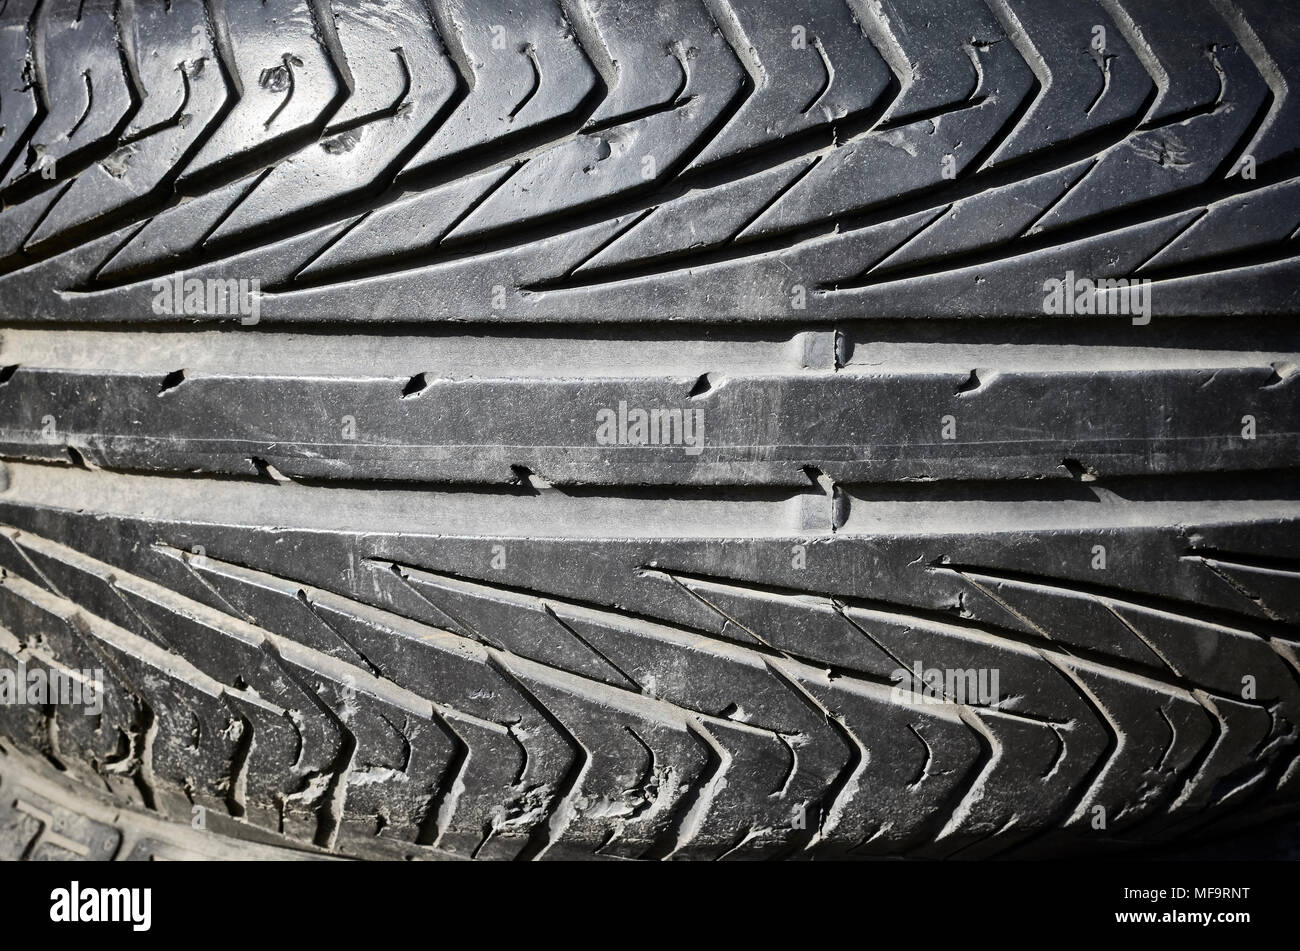 Close up picture of used black car tire. - Stock Image